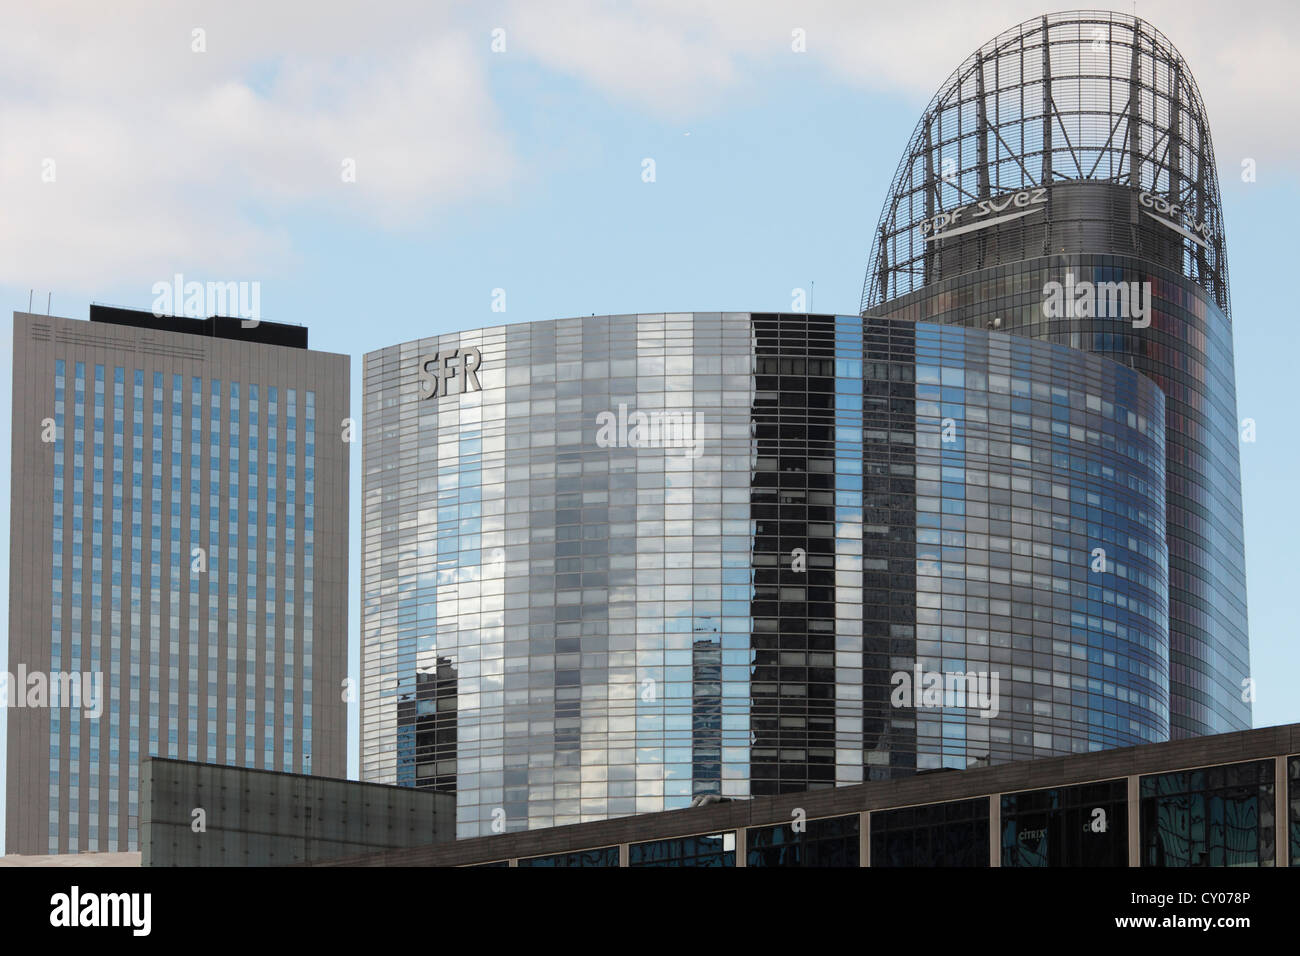 SFR headquarters in Paris - Stock Image